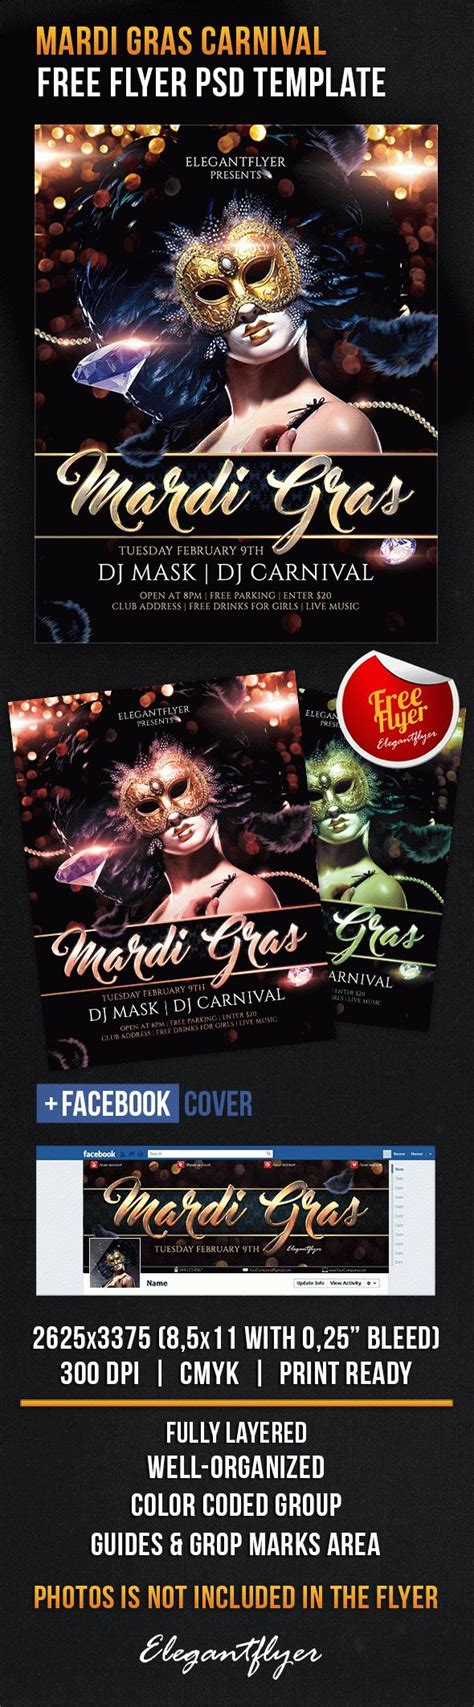 Mardi Gras Carnival Free Flyer Psd Template By Elegantflyer Mardi Gras Flyer Template Free